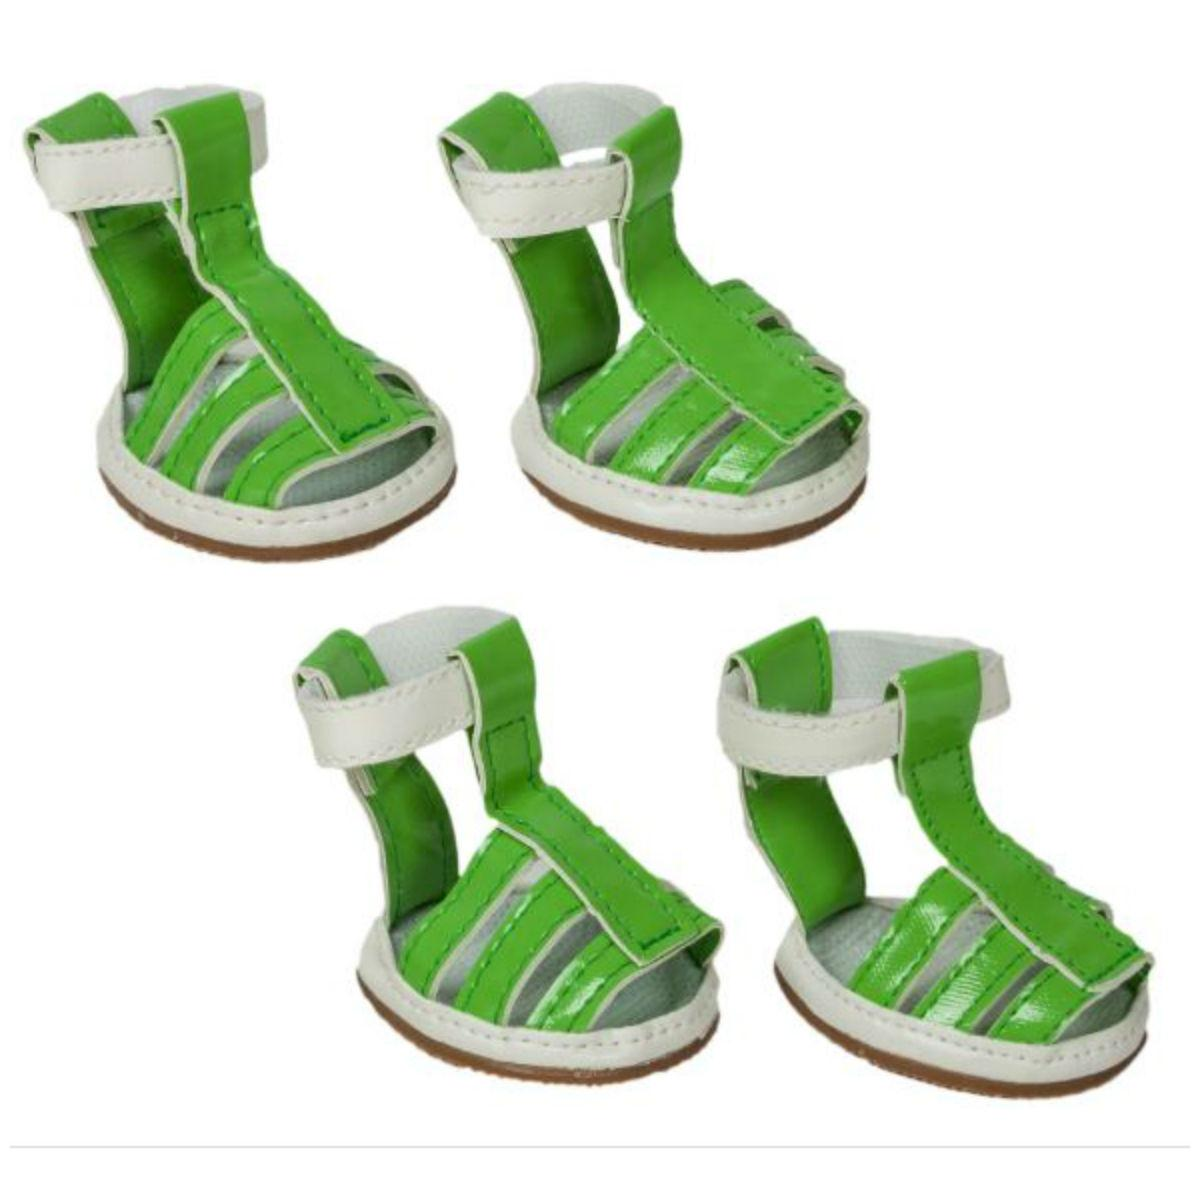 Pet Life Buckle-Supportive PVC Waterproof Dog Sandals Shoes - Neon Green